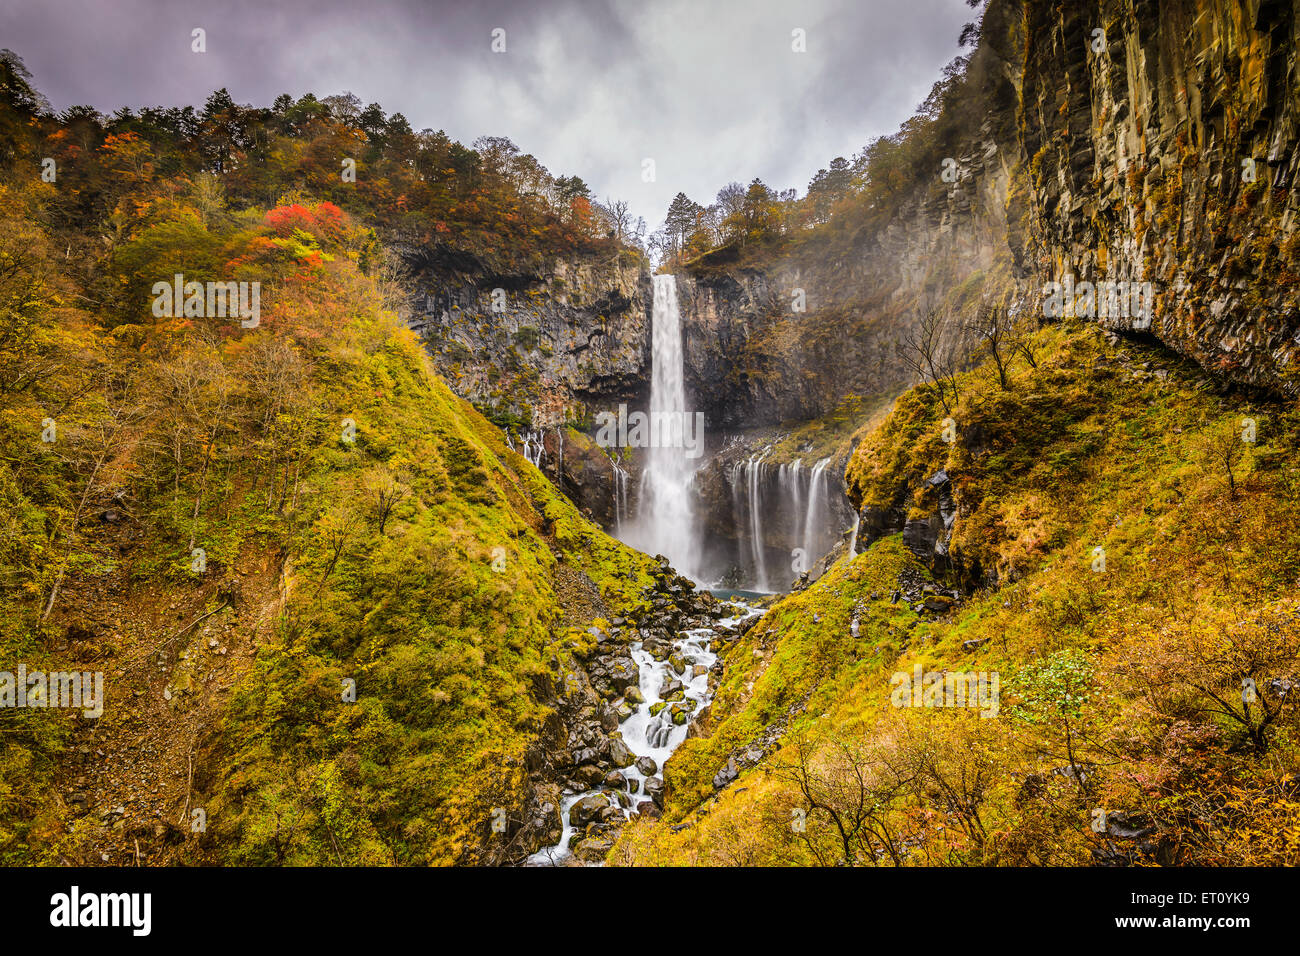 Nikko, Japan at Kegon Falls. - Stock Image